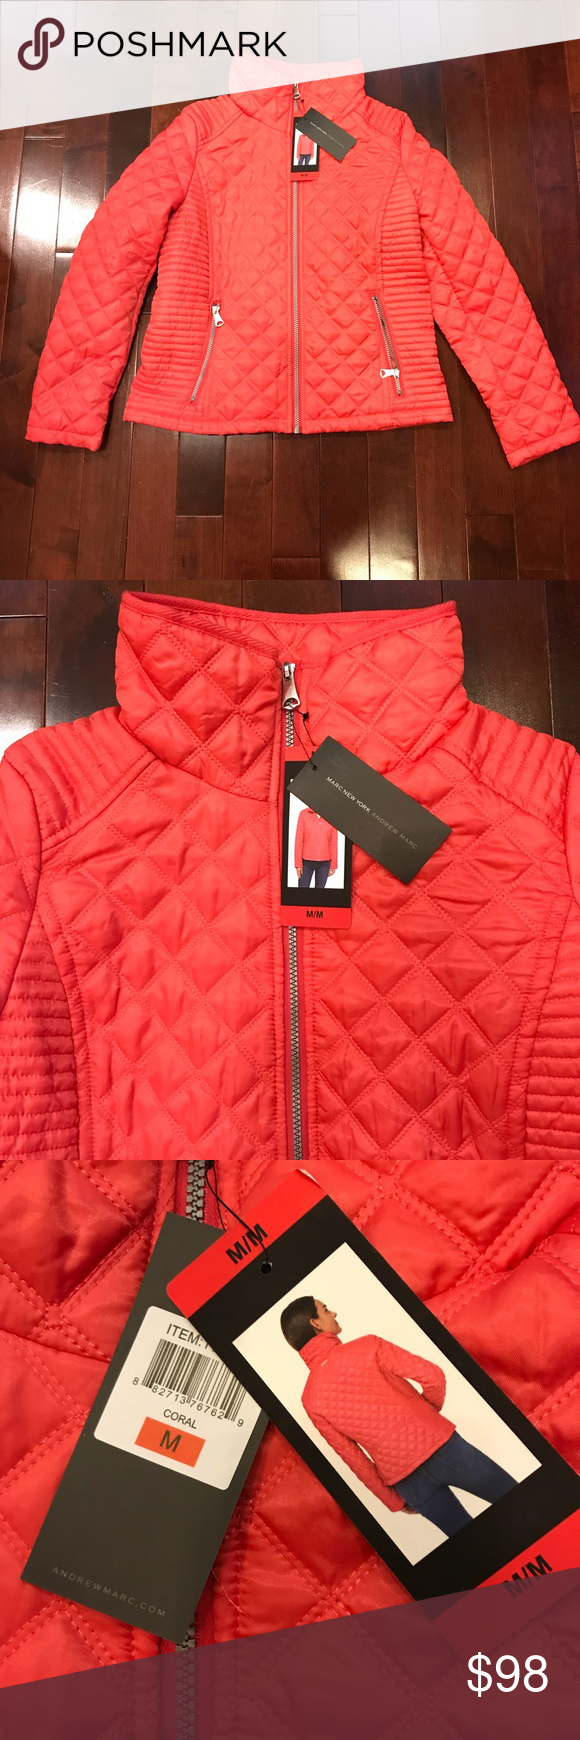 Nwt Marc New York Andrew Marc Coral Puffer Jacket Marc New York Puffer Jackets Clothes Design [ 1740 x 580 Pixel ]